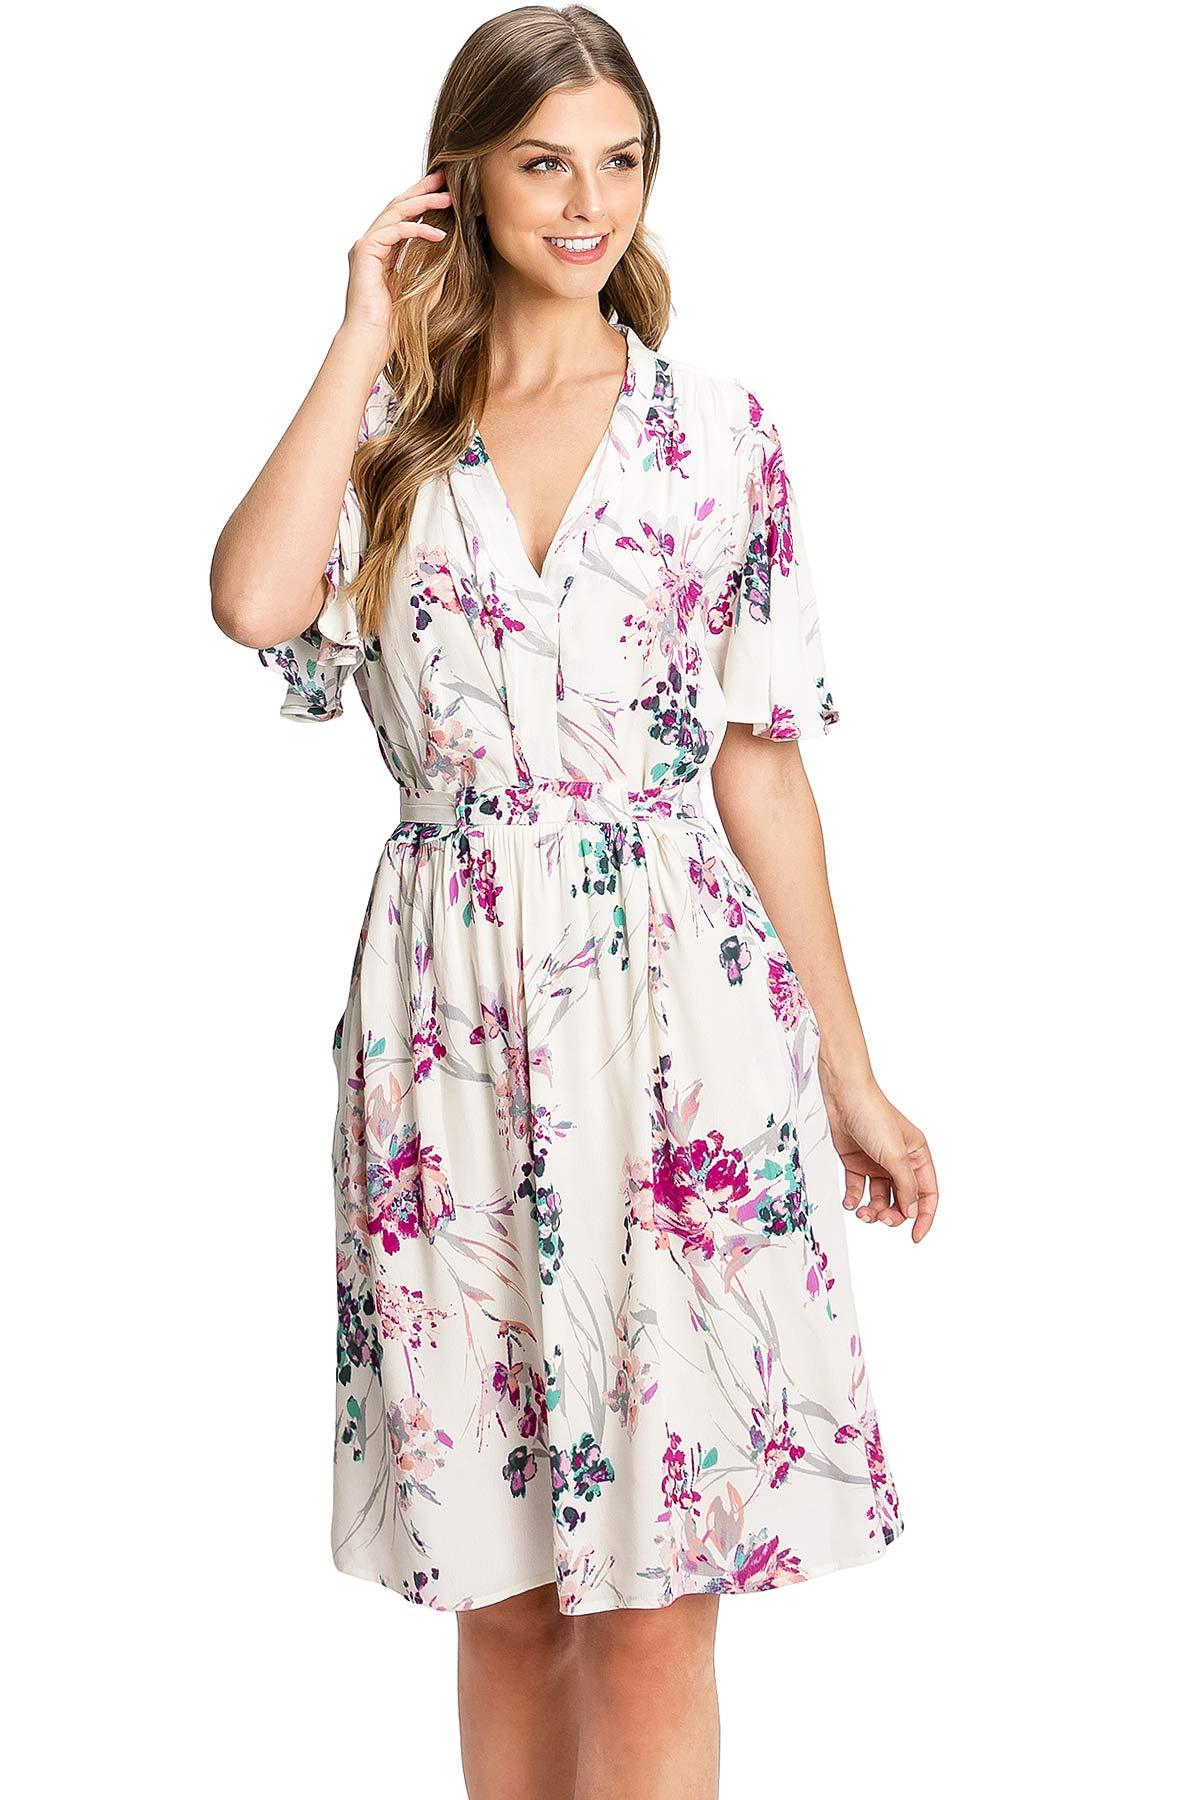 Image of Loralei Floral Dress